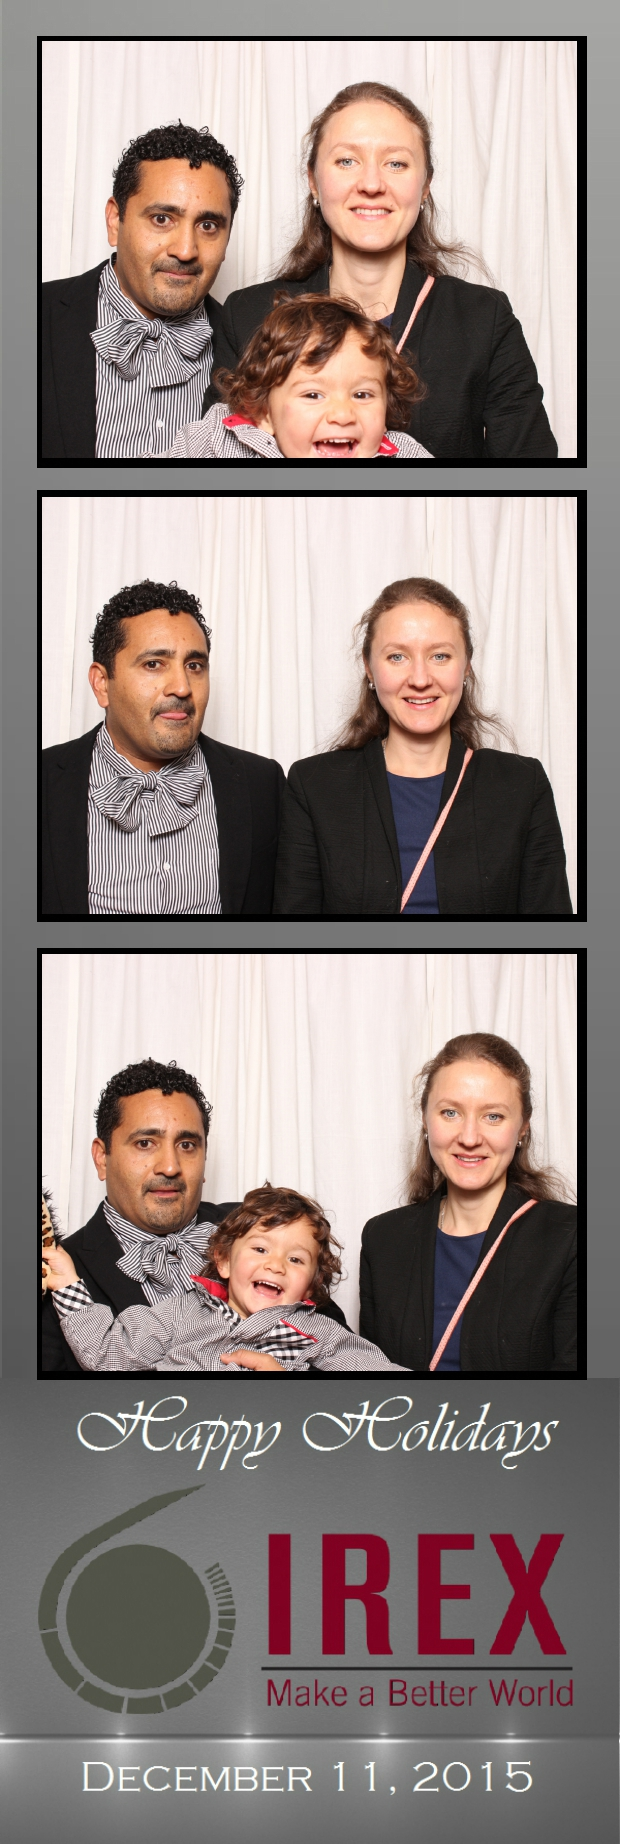 Guest House Events Photo Booth Strips IREX (8).jpg